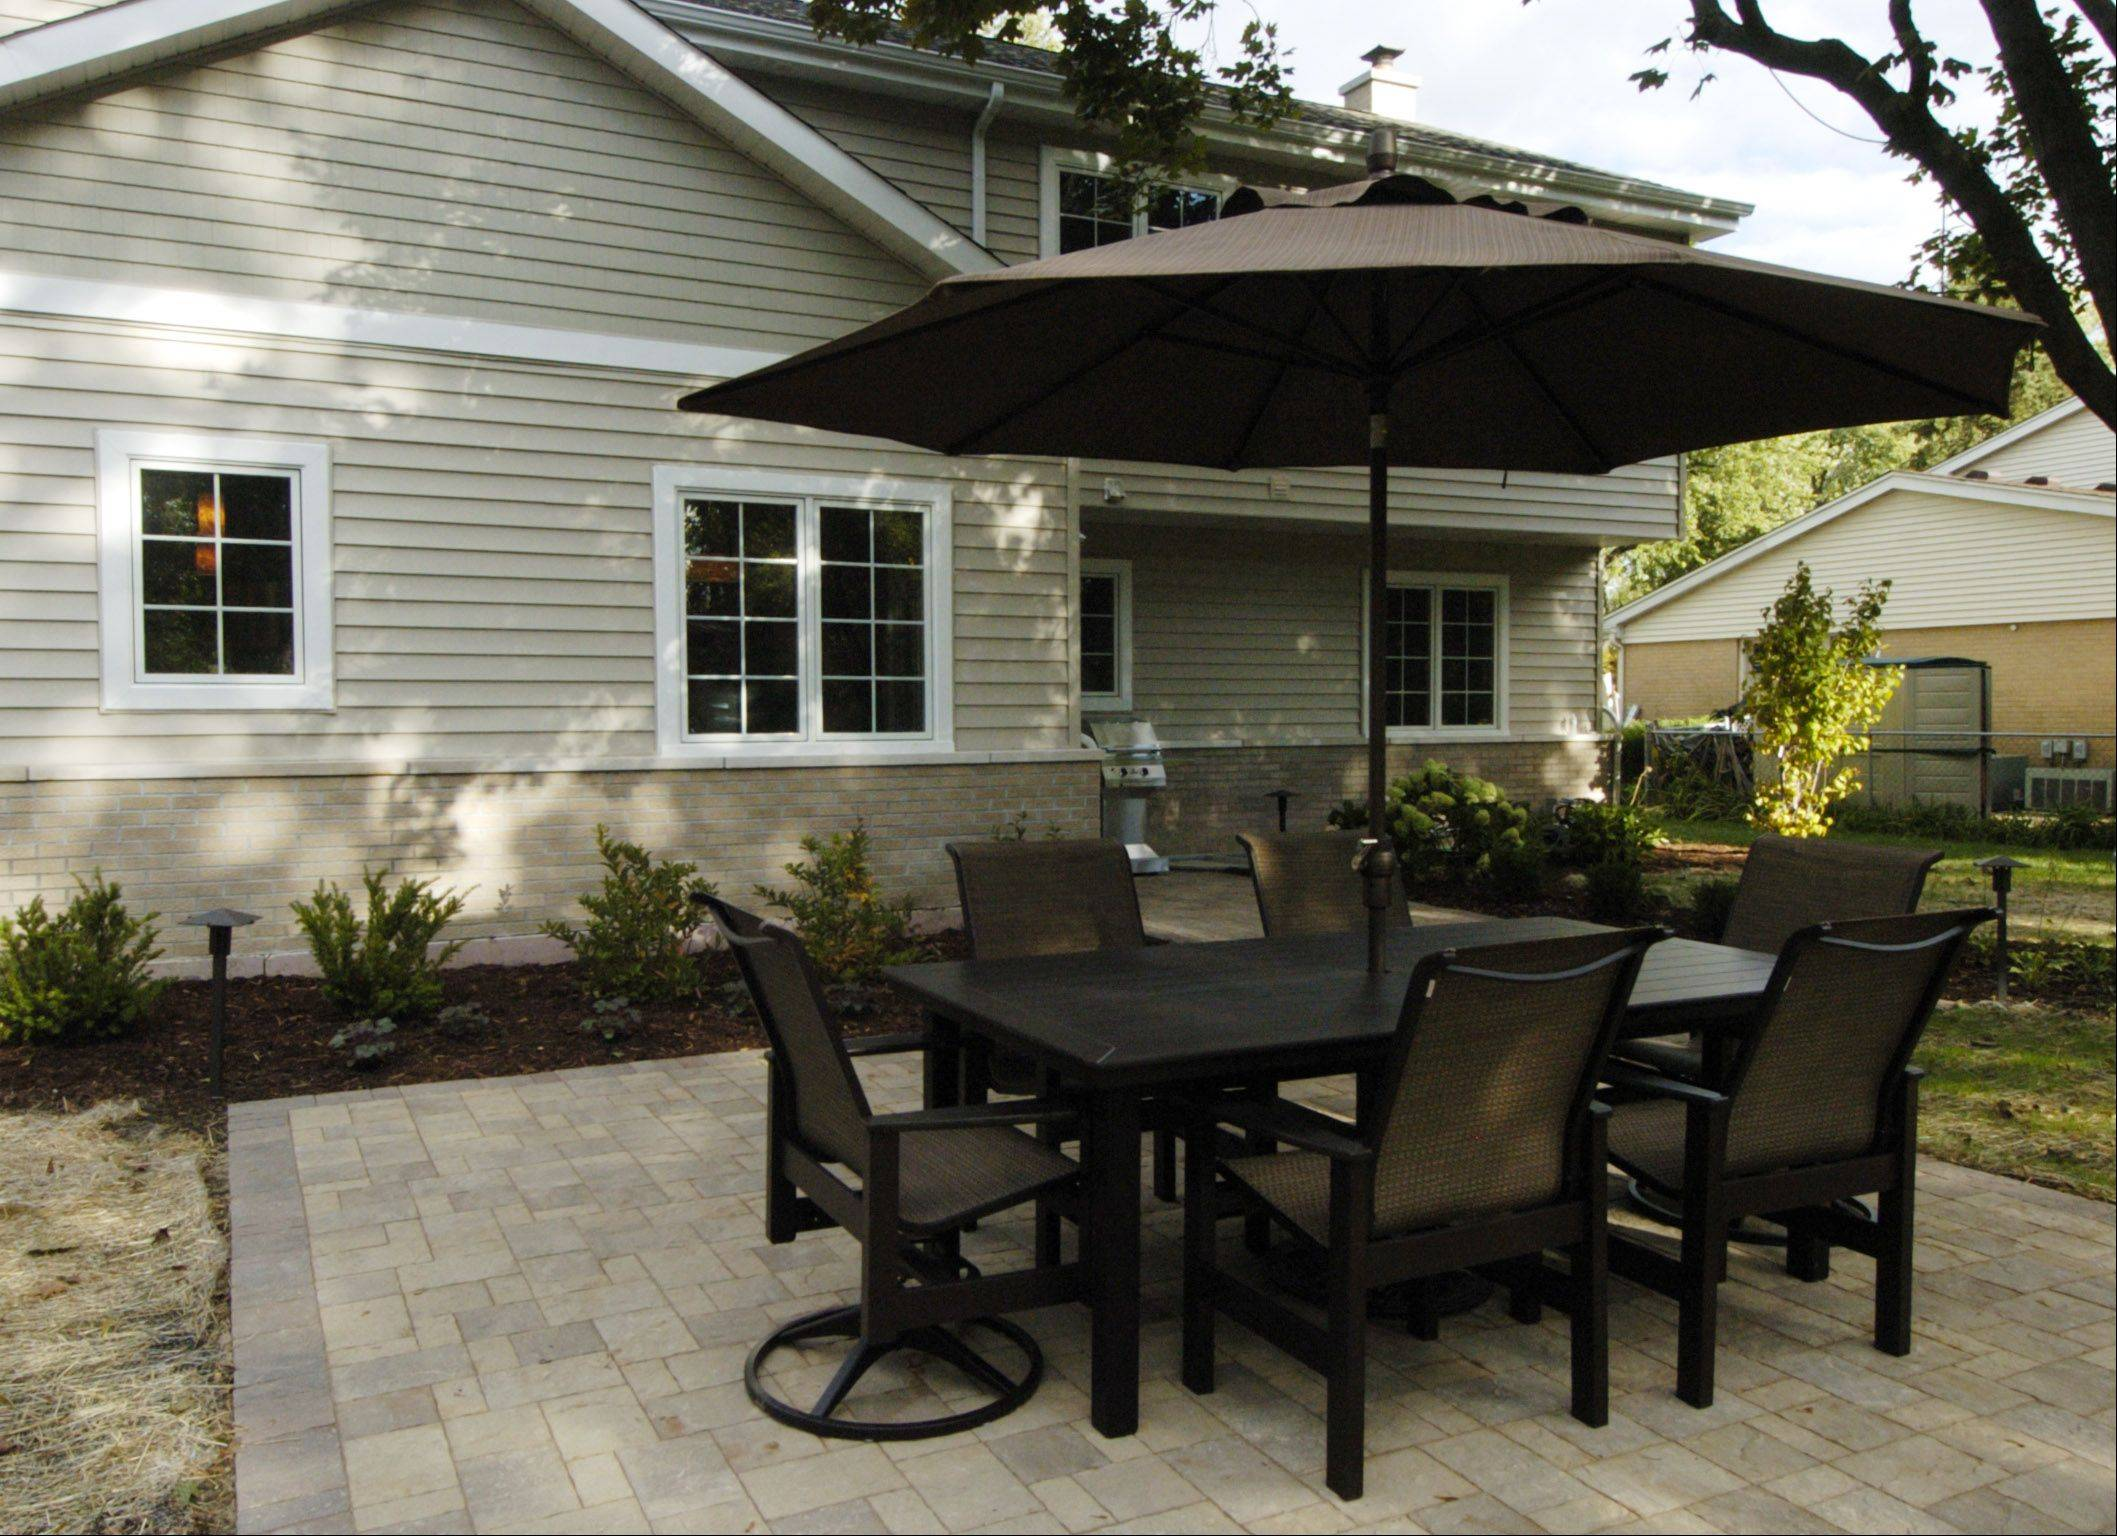 Northwest Metalcraft contributed the patio set for the backyard makeover.